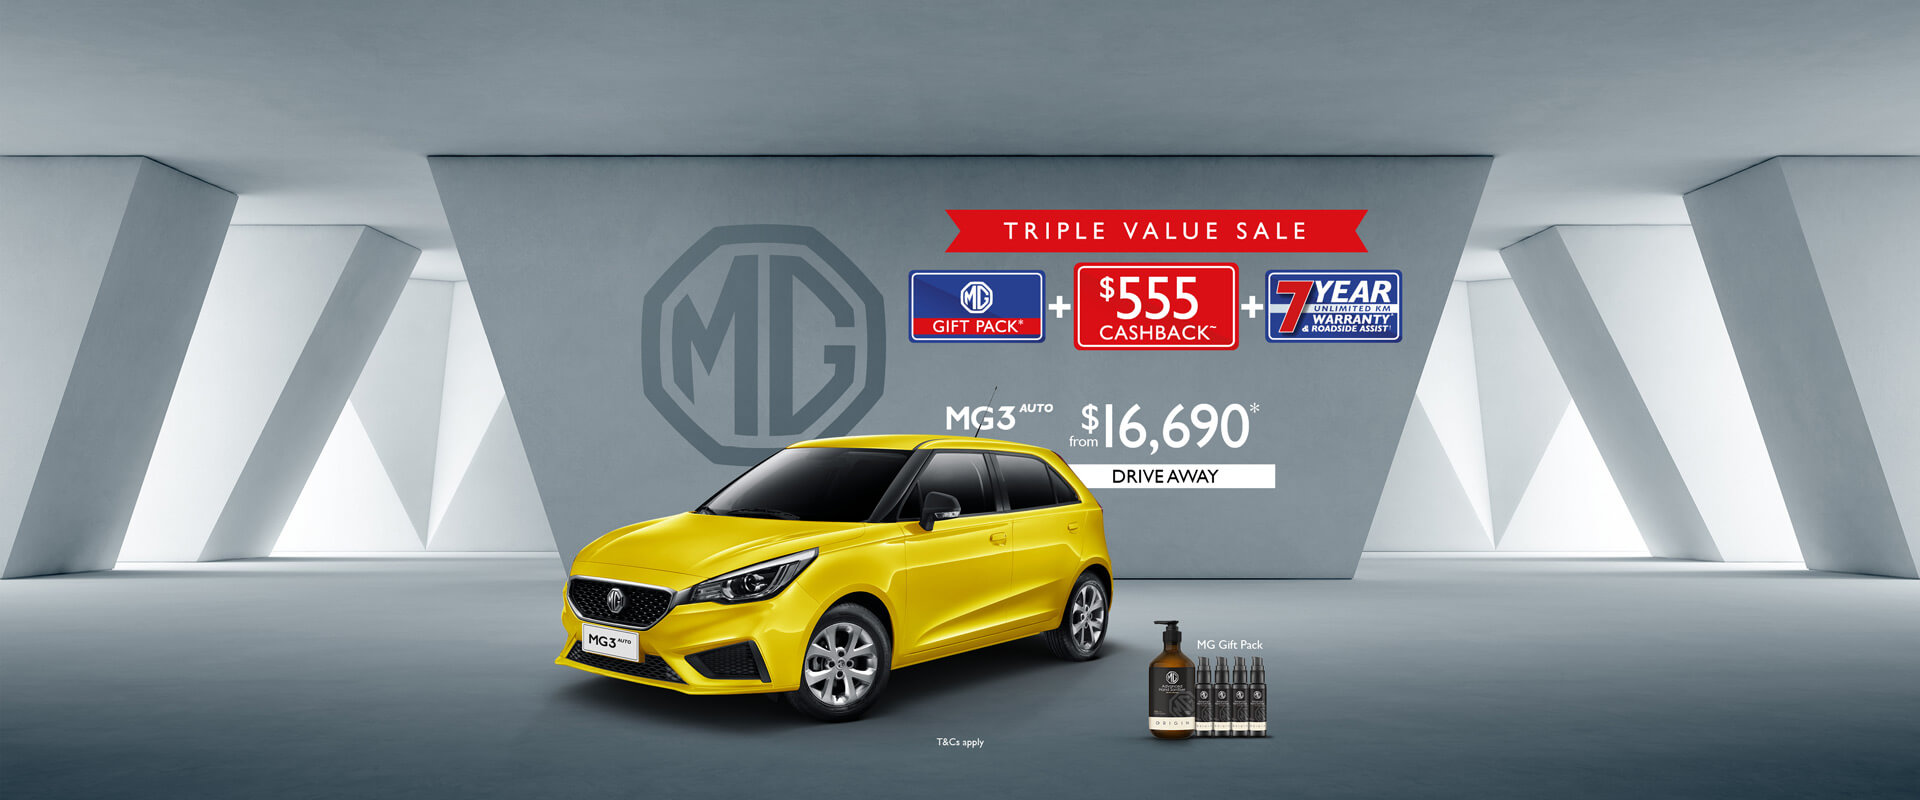 MG3 - Triple Value